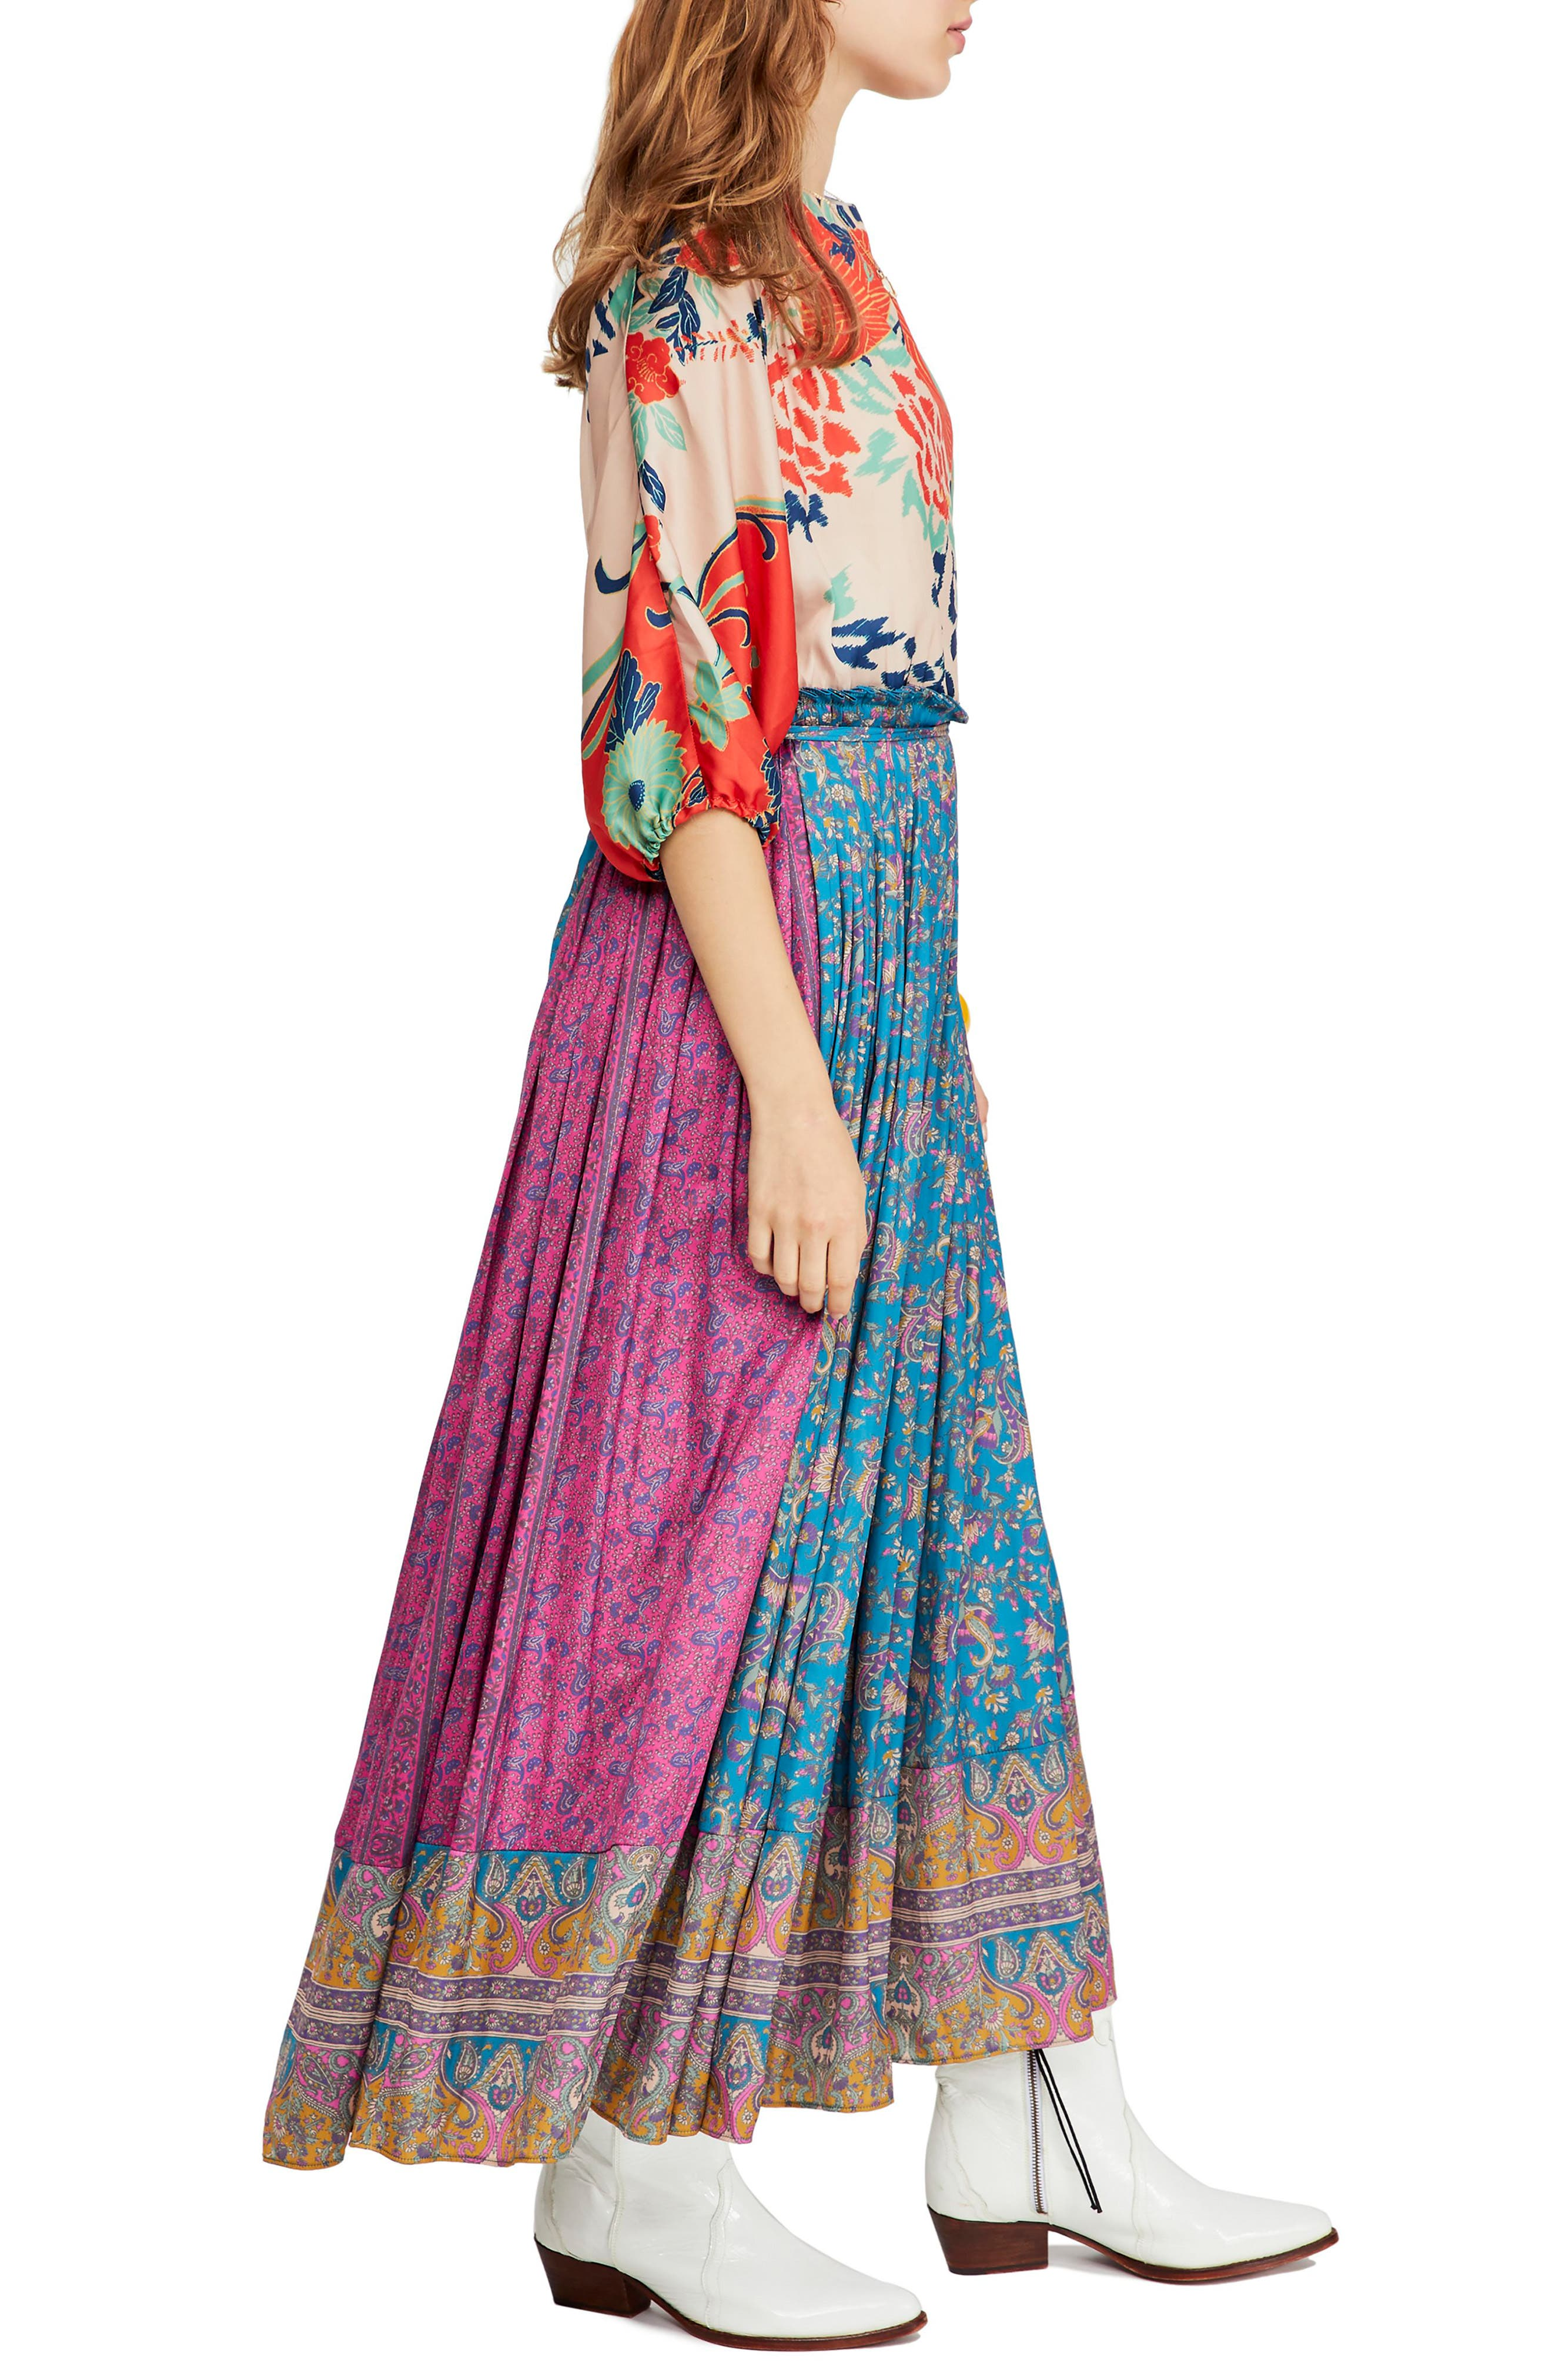 FREE PEOPLE,                             What You Want Maxi Dress,                             Alternate thumbnail 4, color,                             MULTI